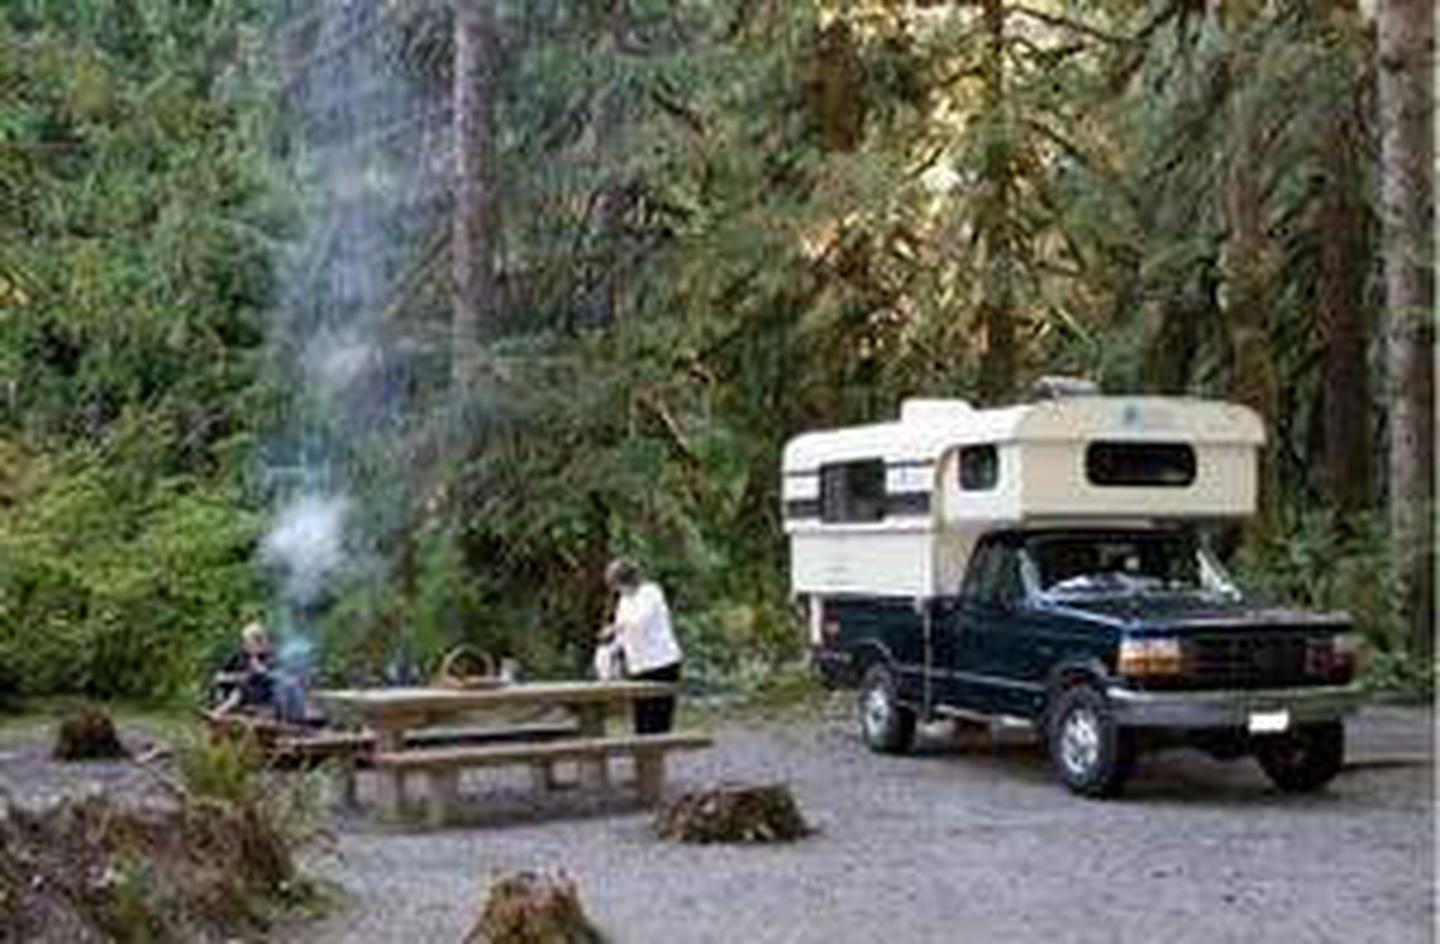 Turlo campsite with picnic table and camperA camper is parked at a campsite in Turlo Campground